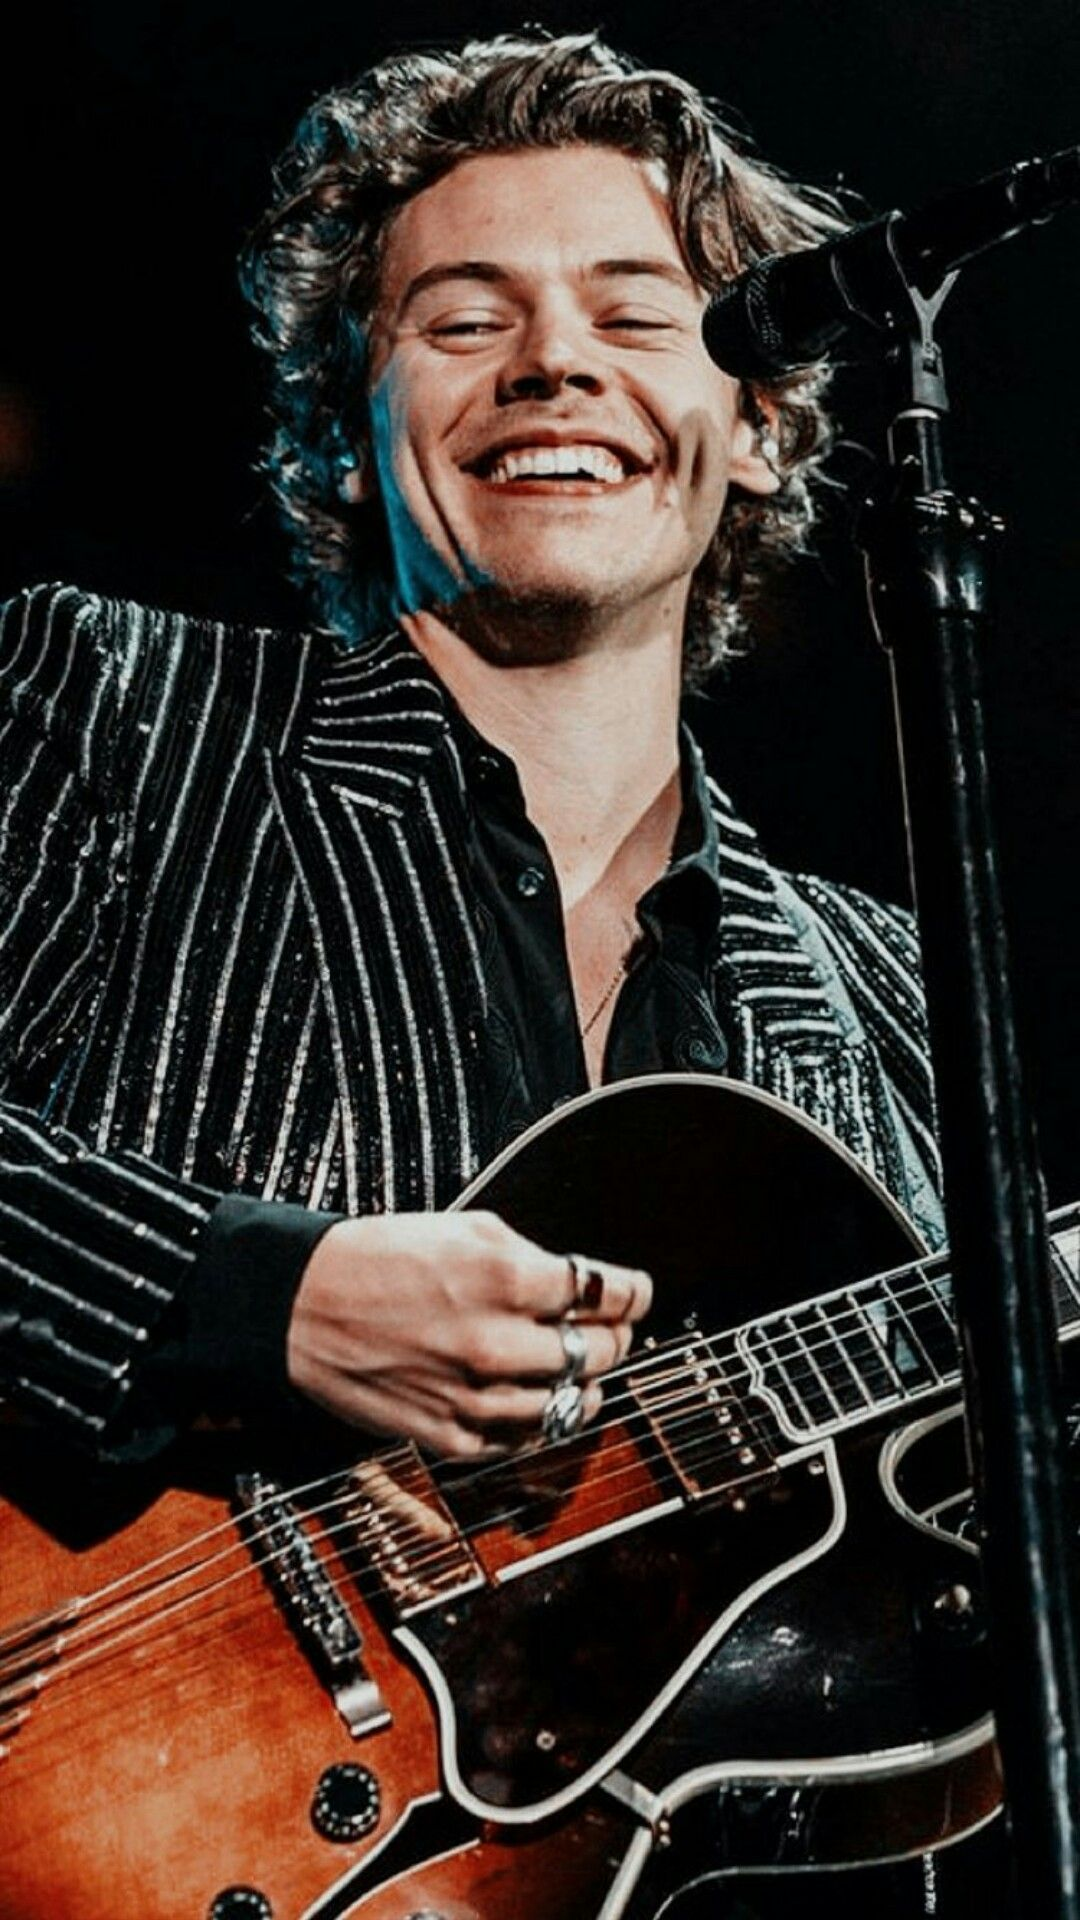 Pin By Vaishvamp On Treat Harry With Kindness With Images